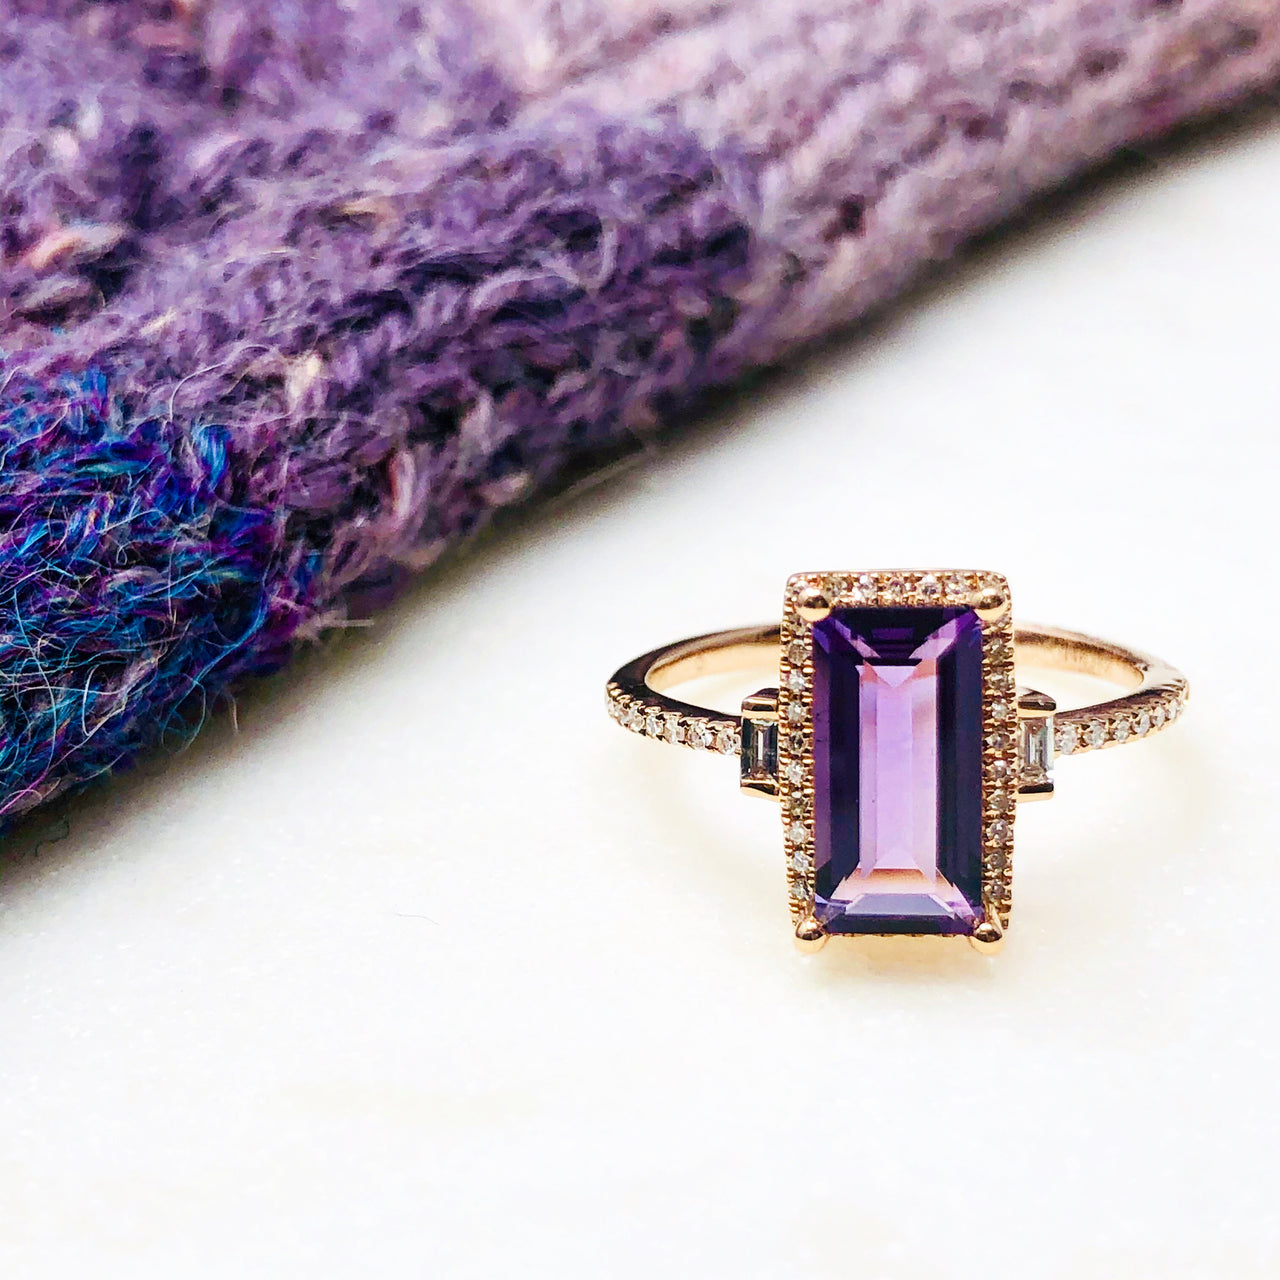 14k Rose Gold Amethyst and Diamond Ring.